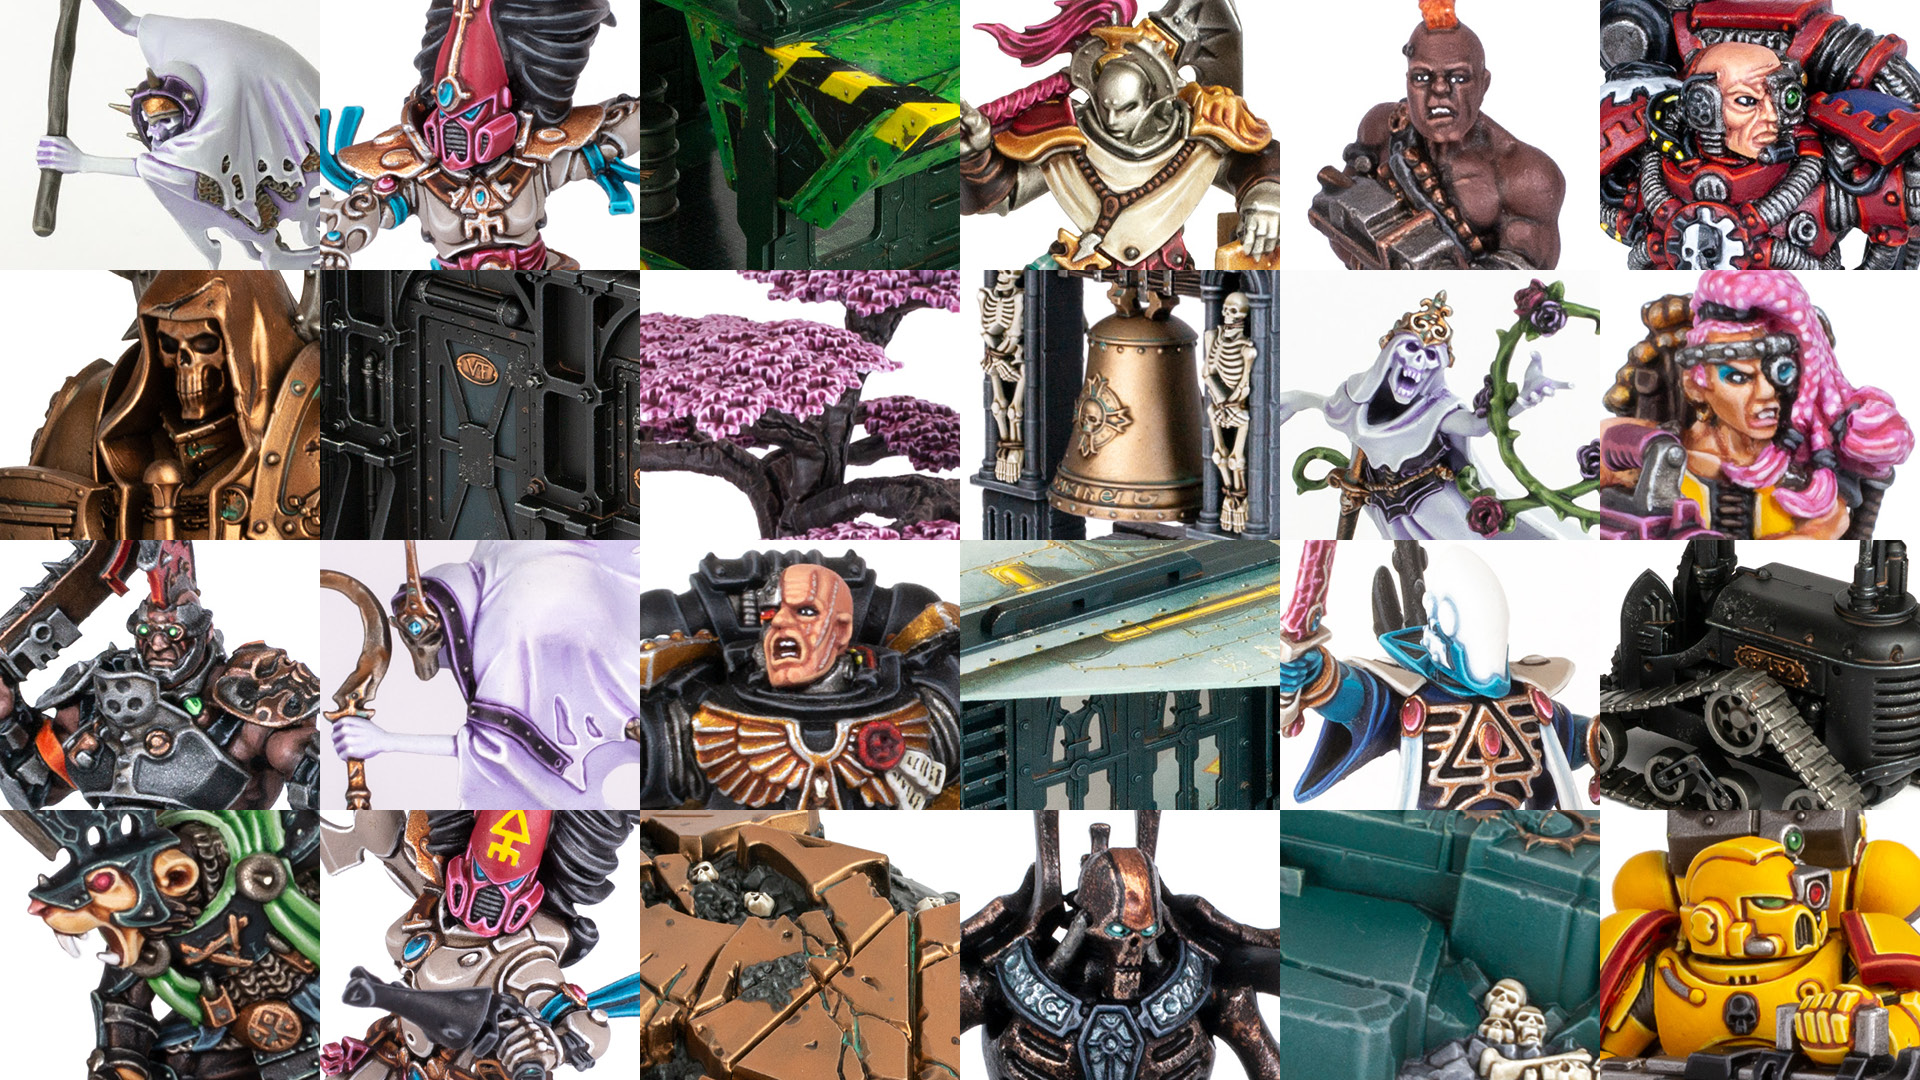 A mosaic of Stahly's painted models from 2020